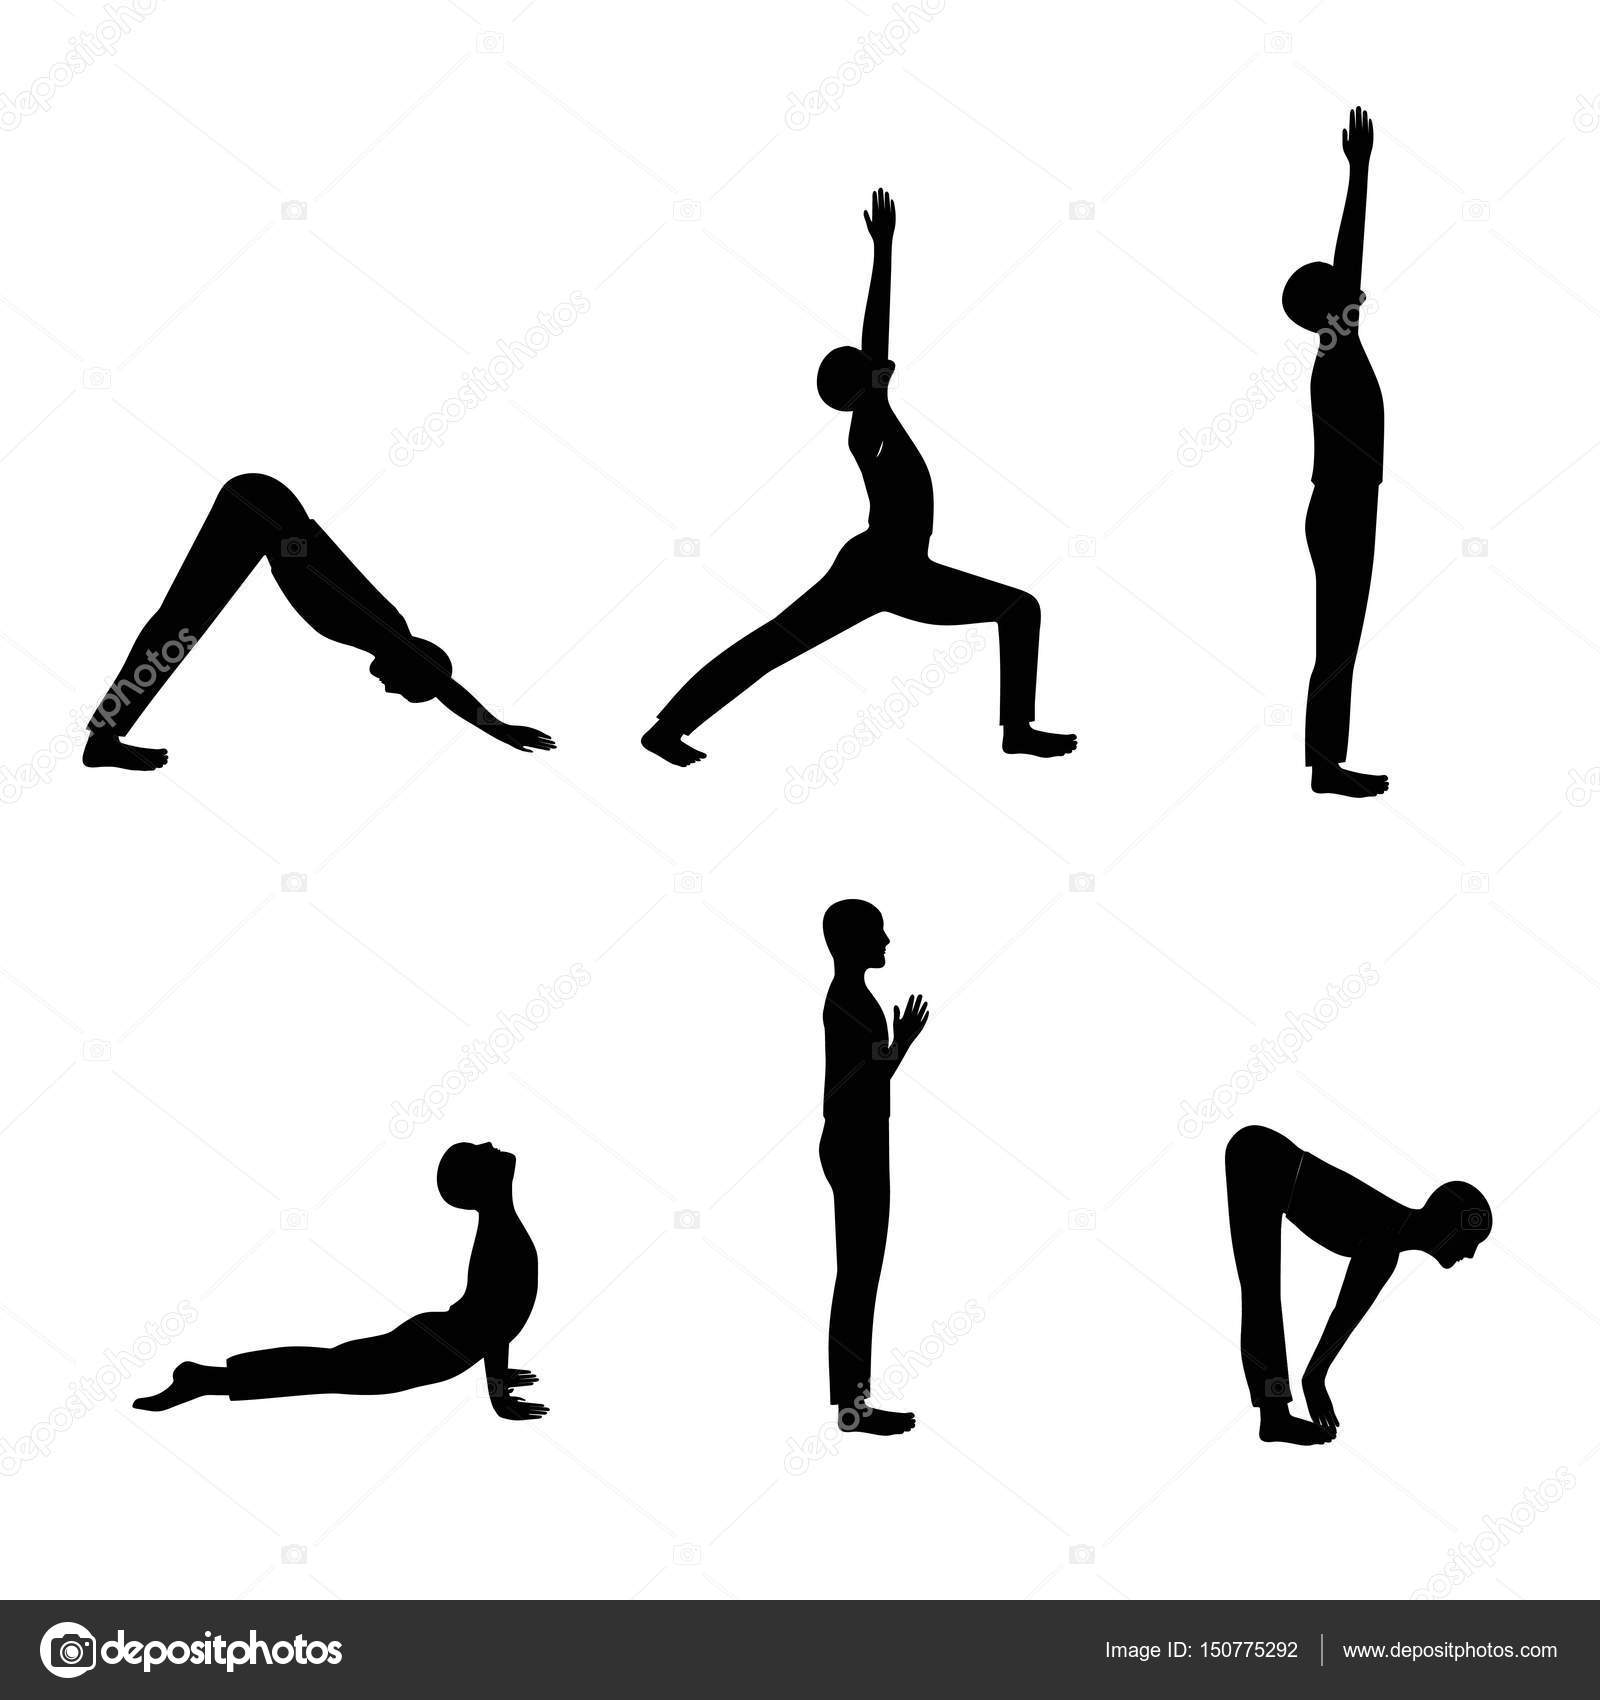 Black Silhouette Men Yoga Poses Vector Set In Postures Isolated On White Background By Kaimena1